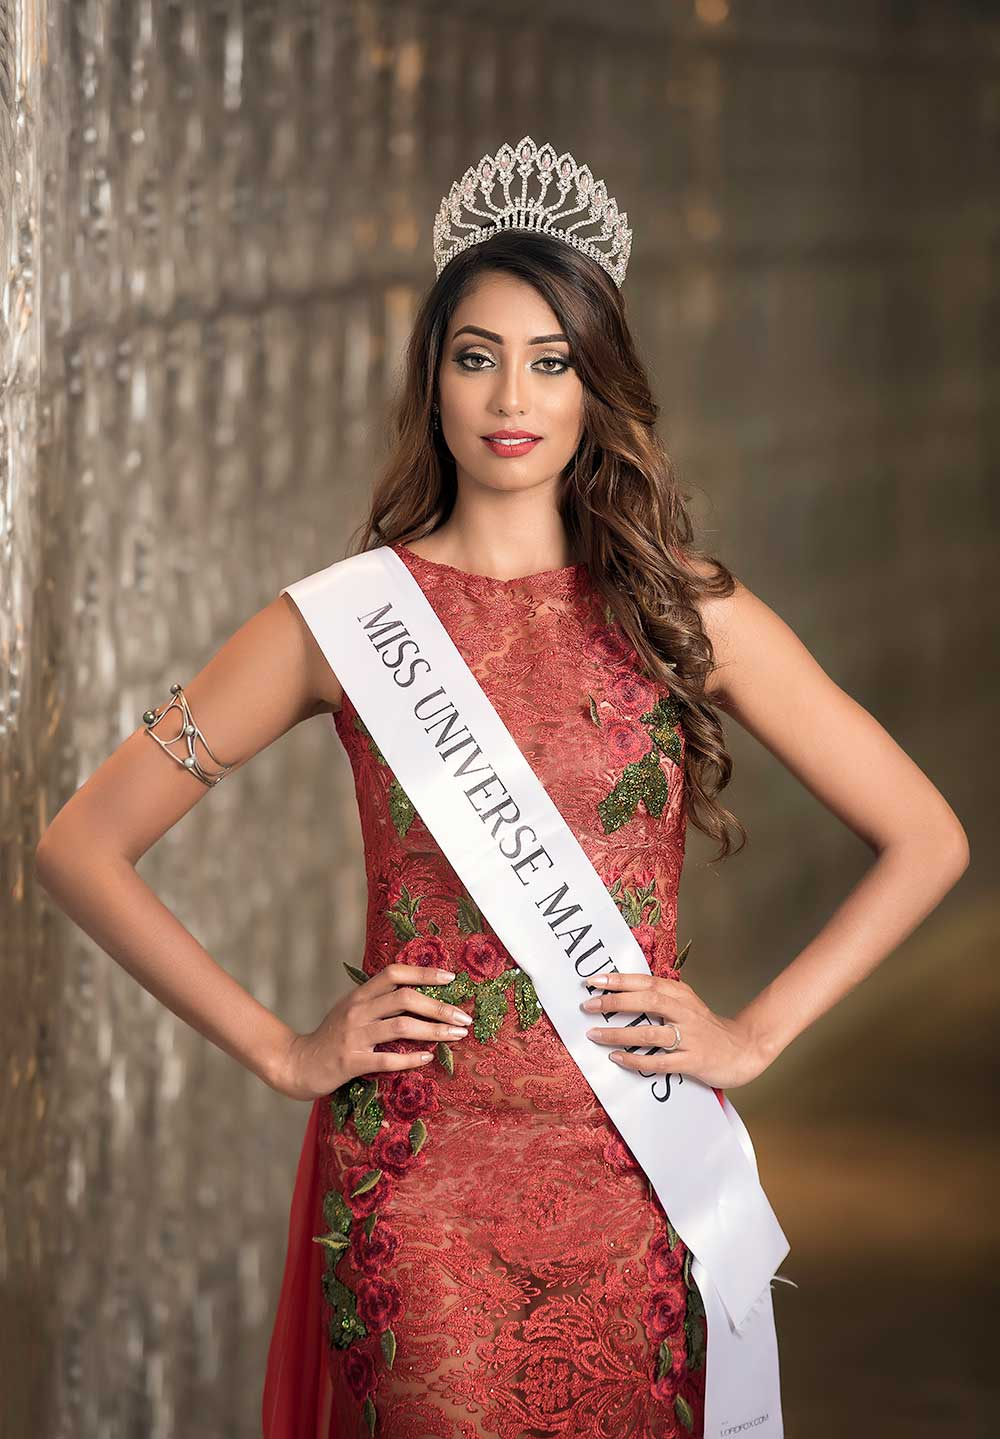 miss universe mauritius 2018 meet the contestants the. Black Bedroom Furniture Sets. Home Design Ideas